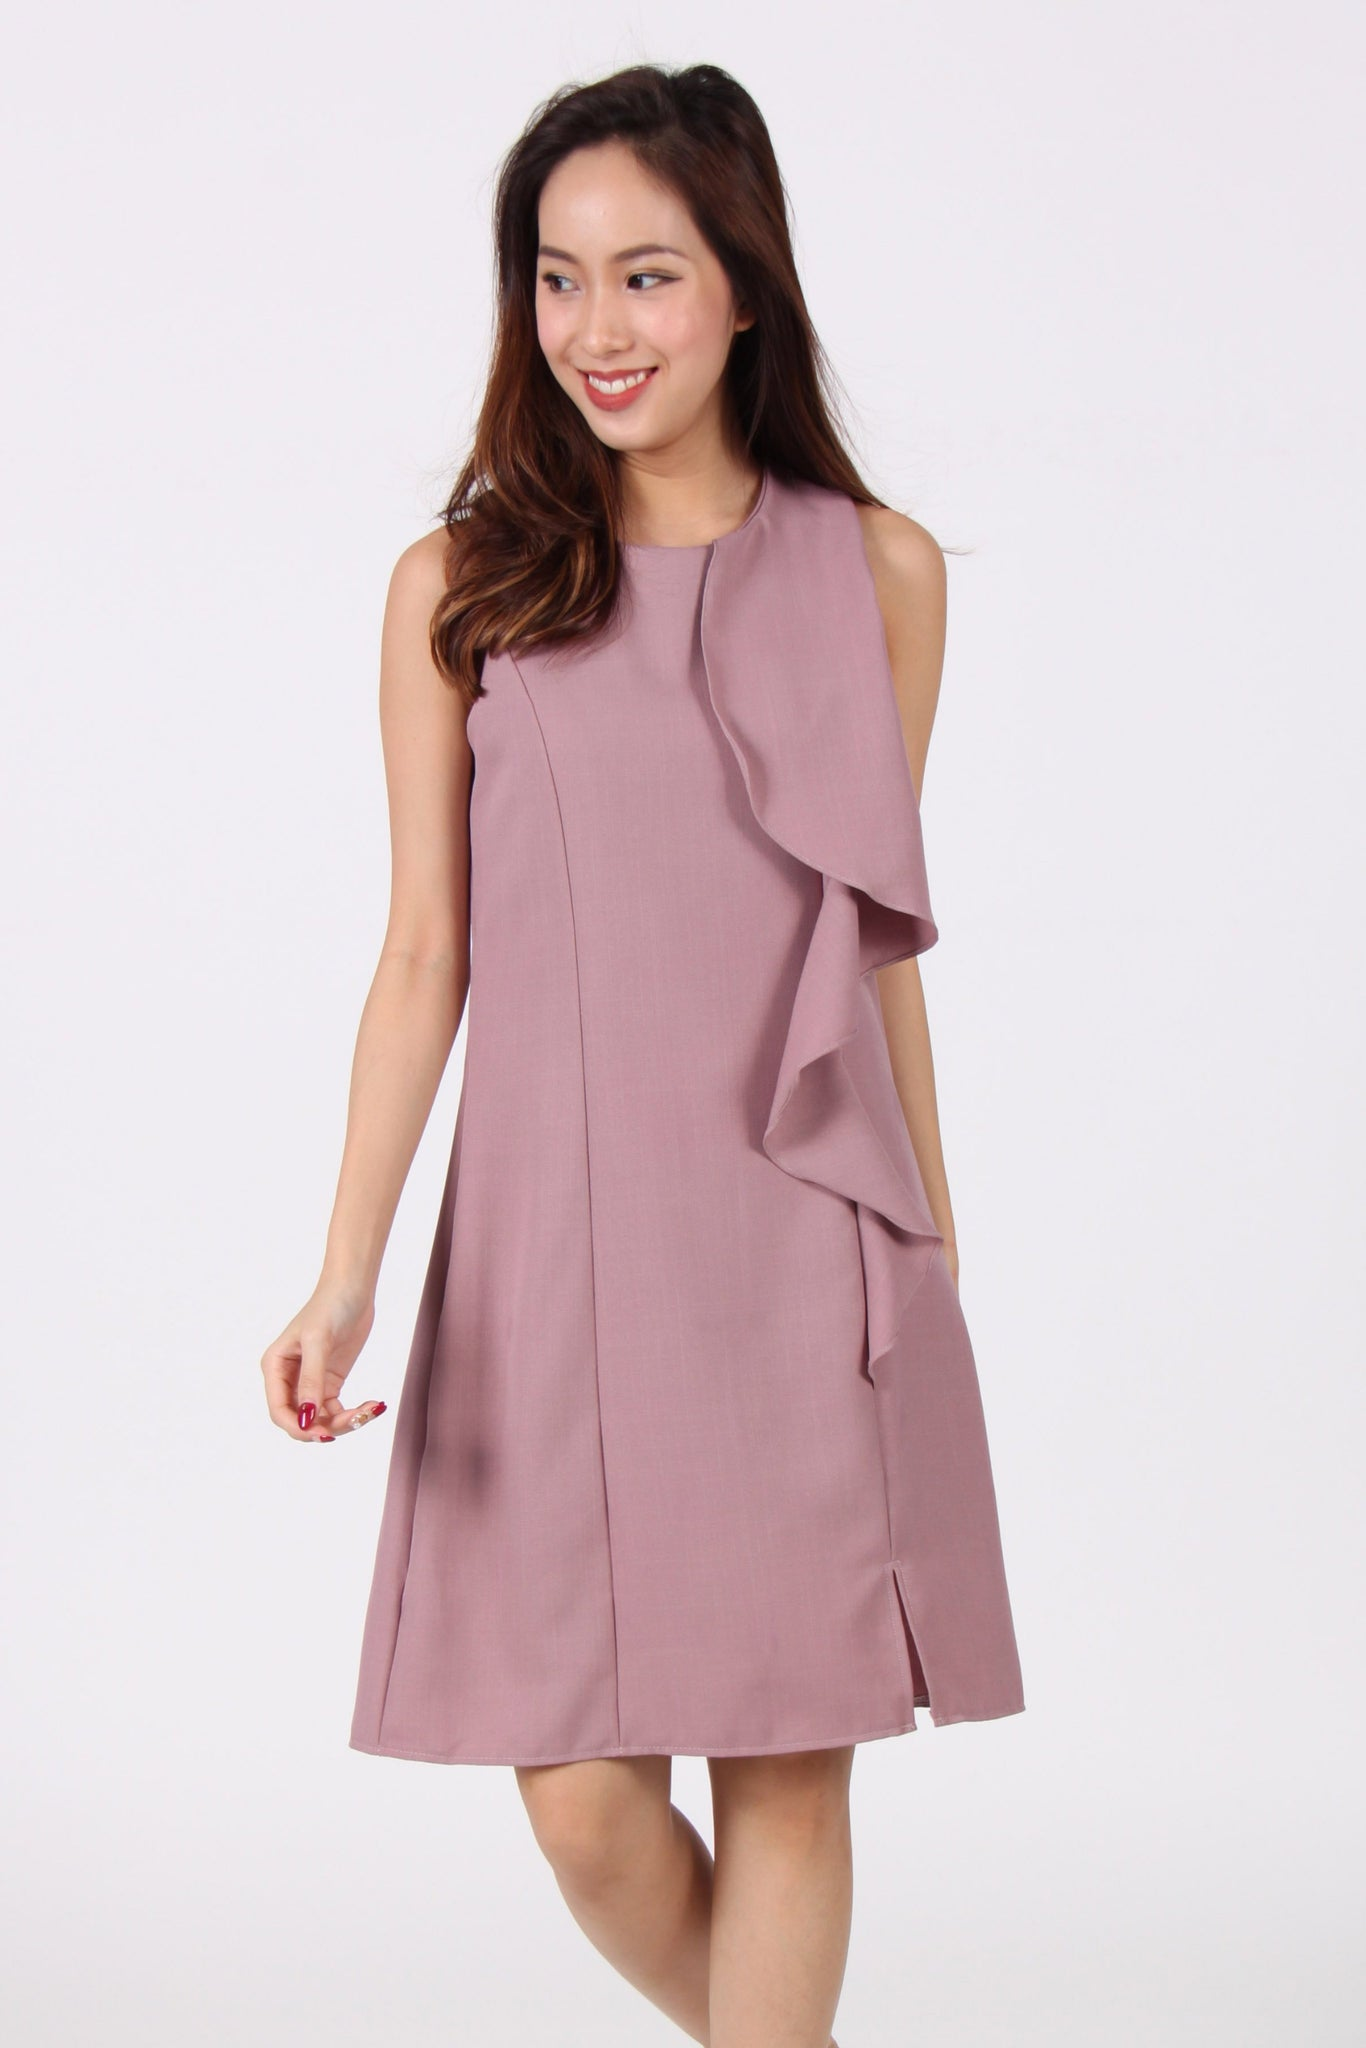 Ruffles Down Shift Dress in Pink